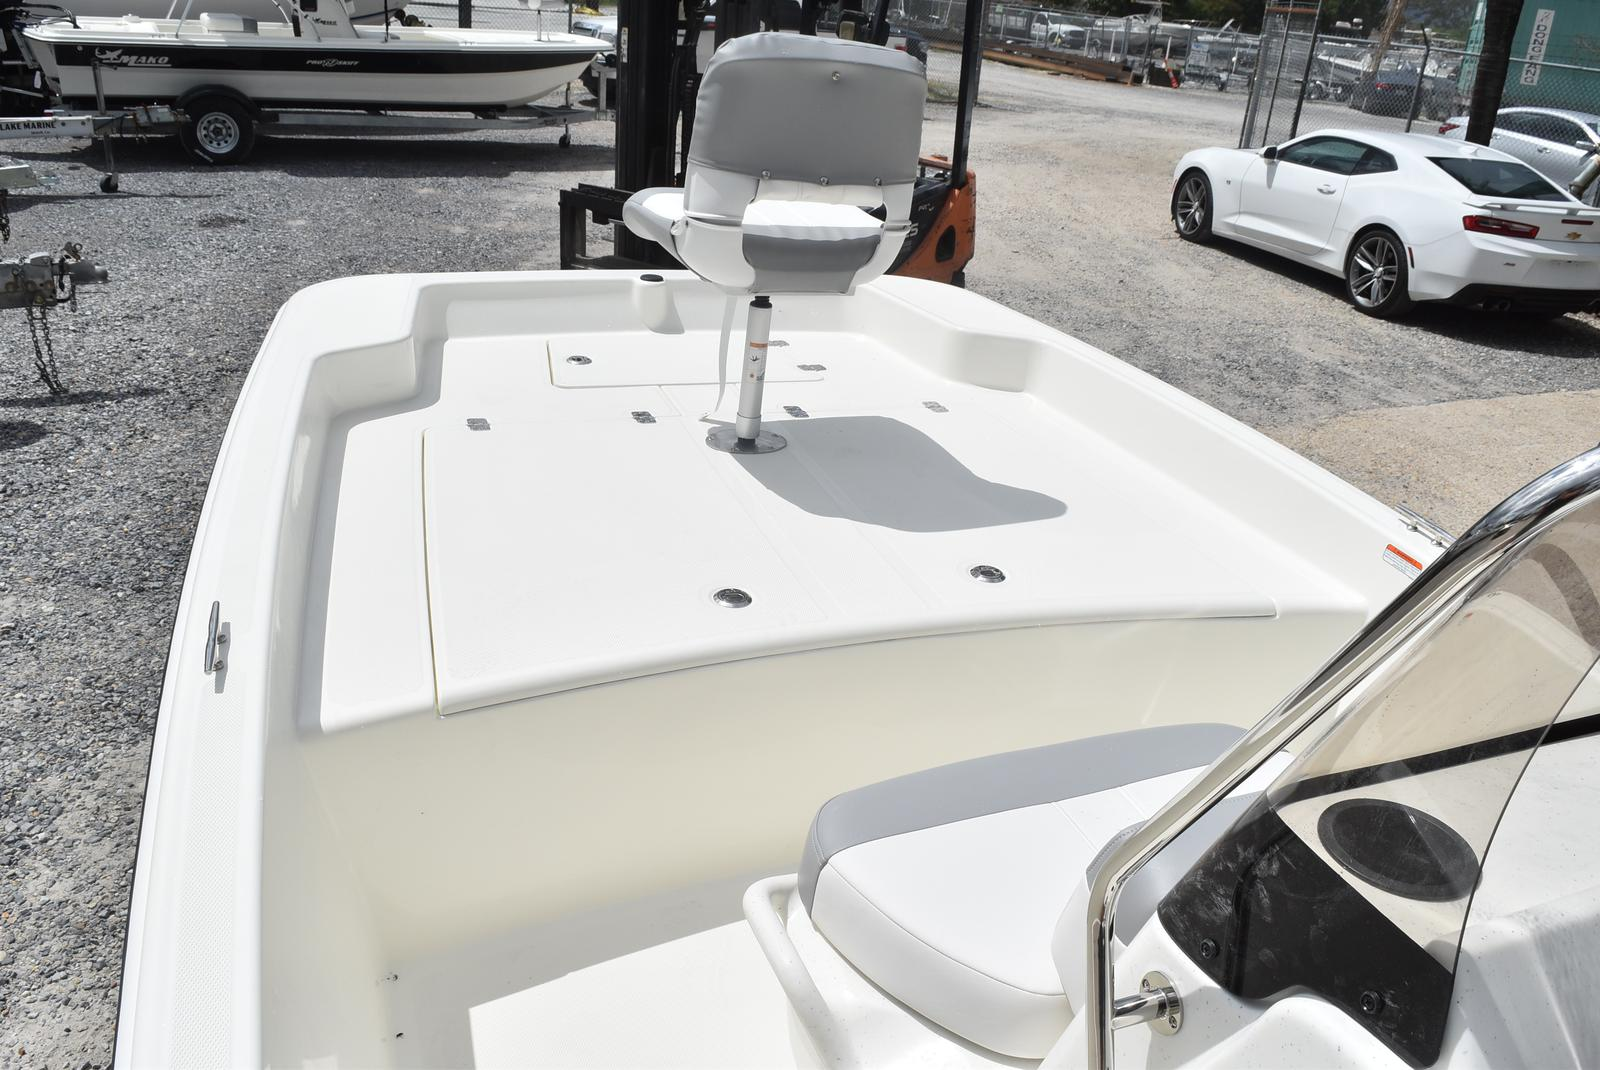 2020 Mako boat for sale, model of the boat is Pro Skiff 17, 75 ELPT & Image # 439 of 702